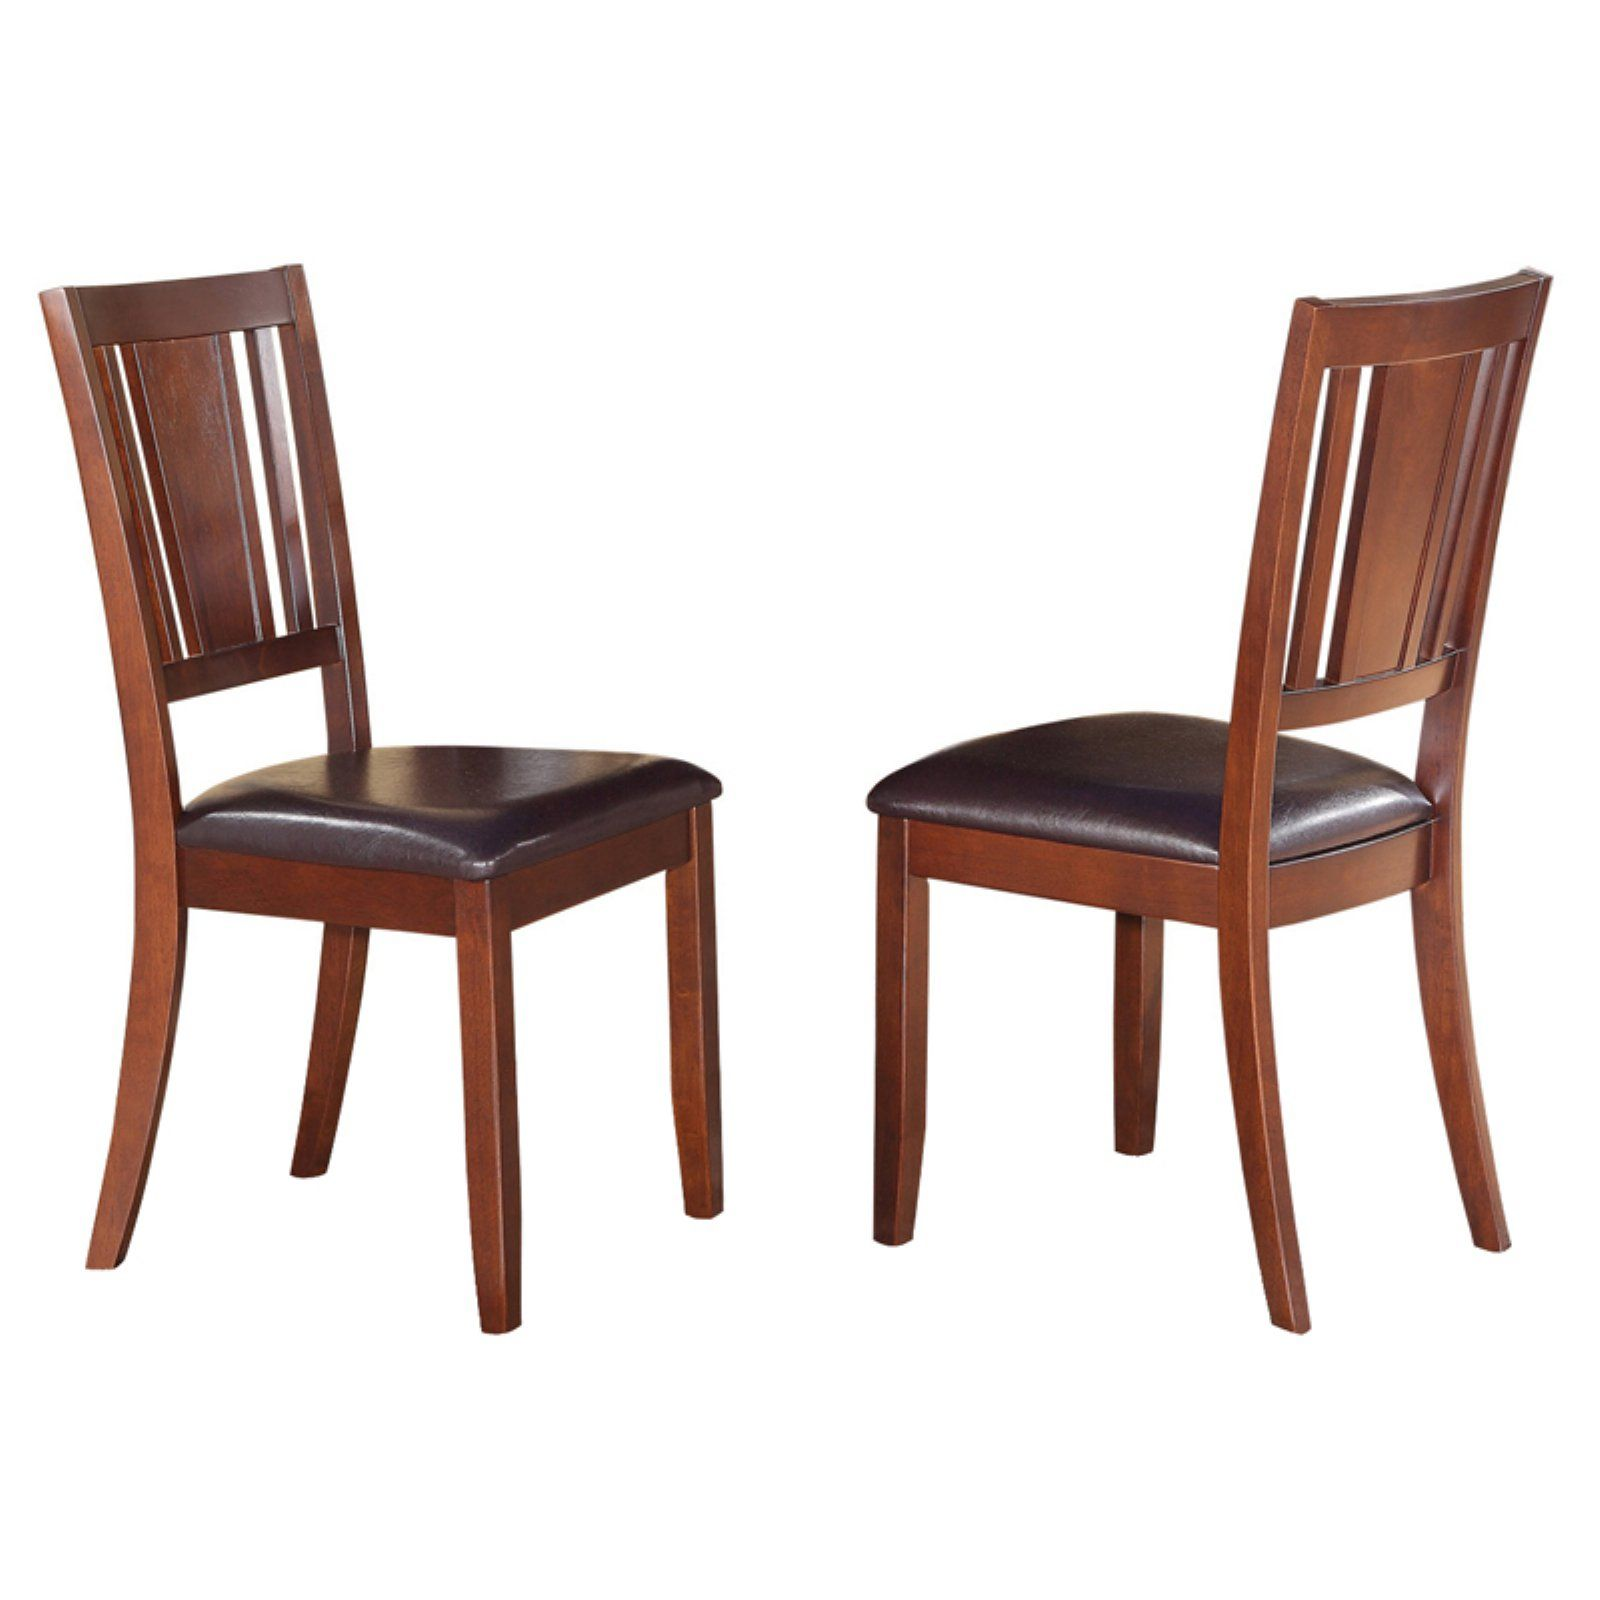 Enjoyable East West Furniture Dudley Dining Chair With Faux Leather Creativecarmelina Interior Chair Design Creativecarmelinacom